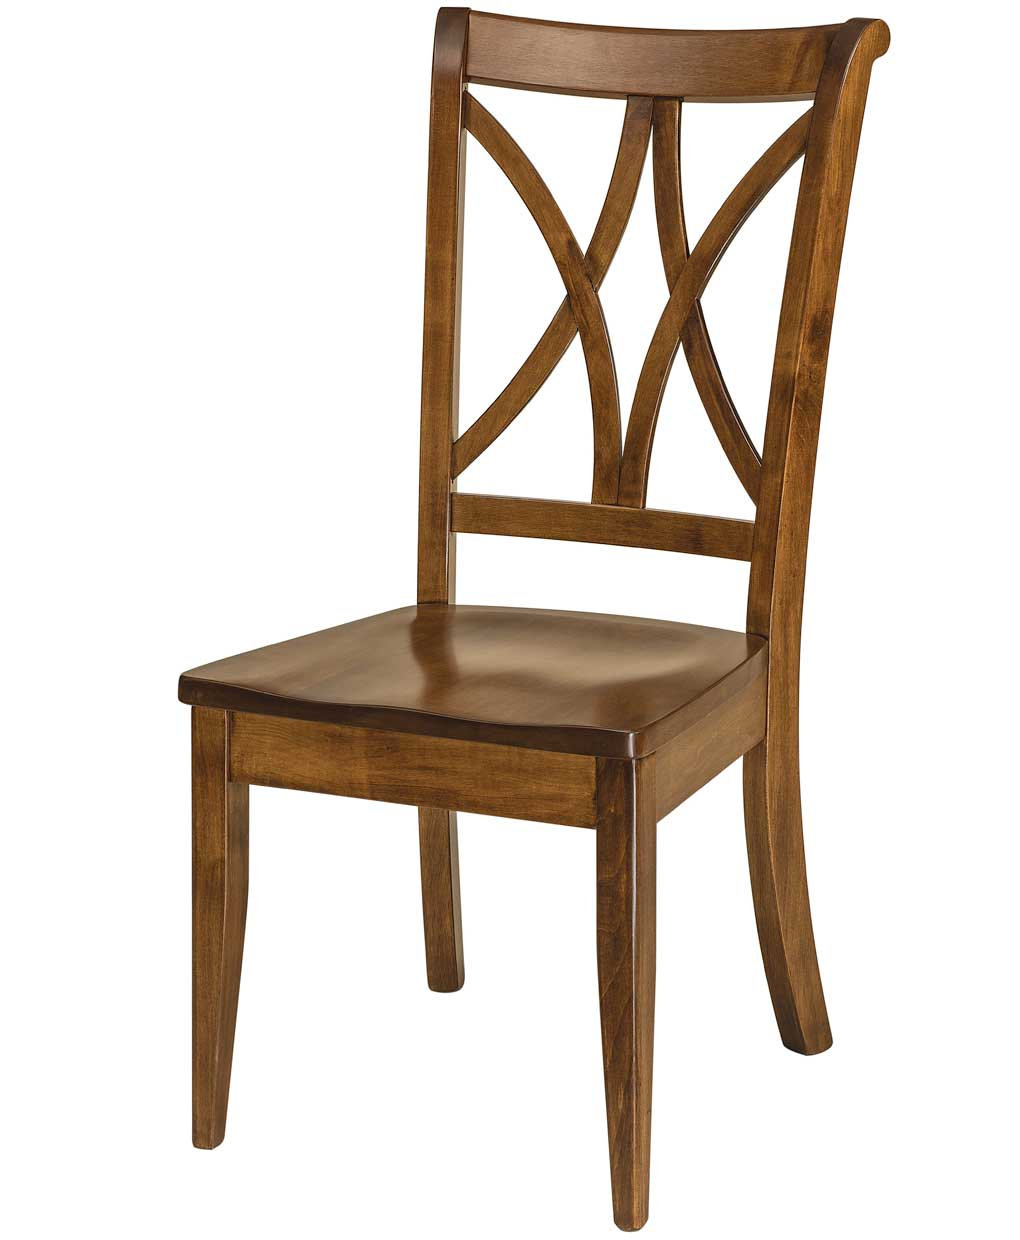 amish dining room chairs   Callahan Dining Chair - Amish Direct Furniture